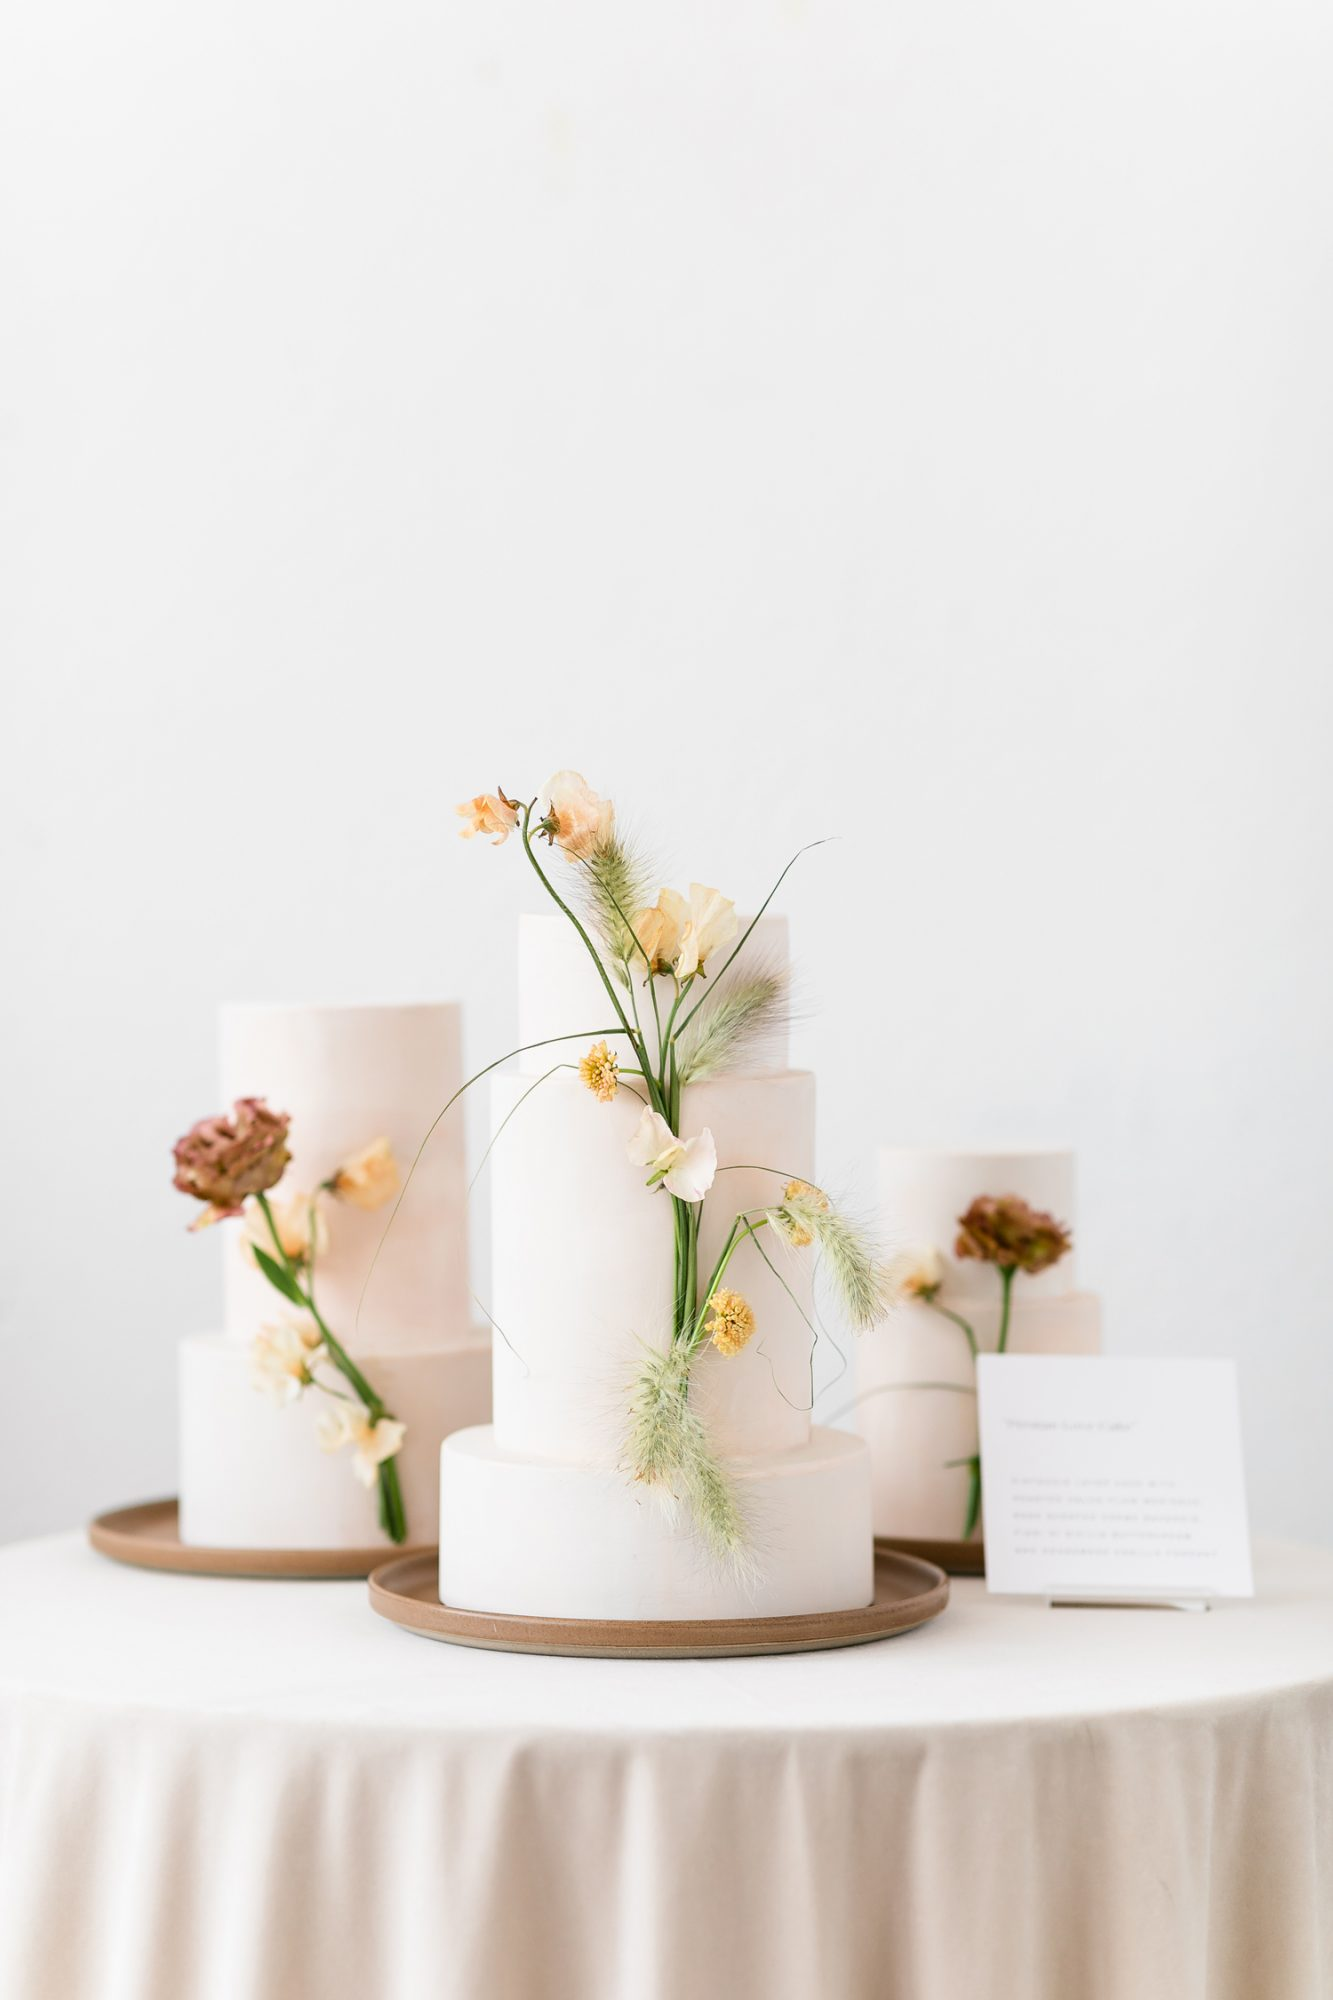 three smooth white multi-tiered wedding cakes embellished with flowers